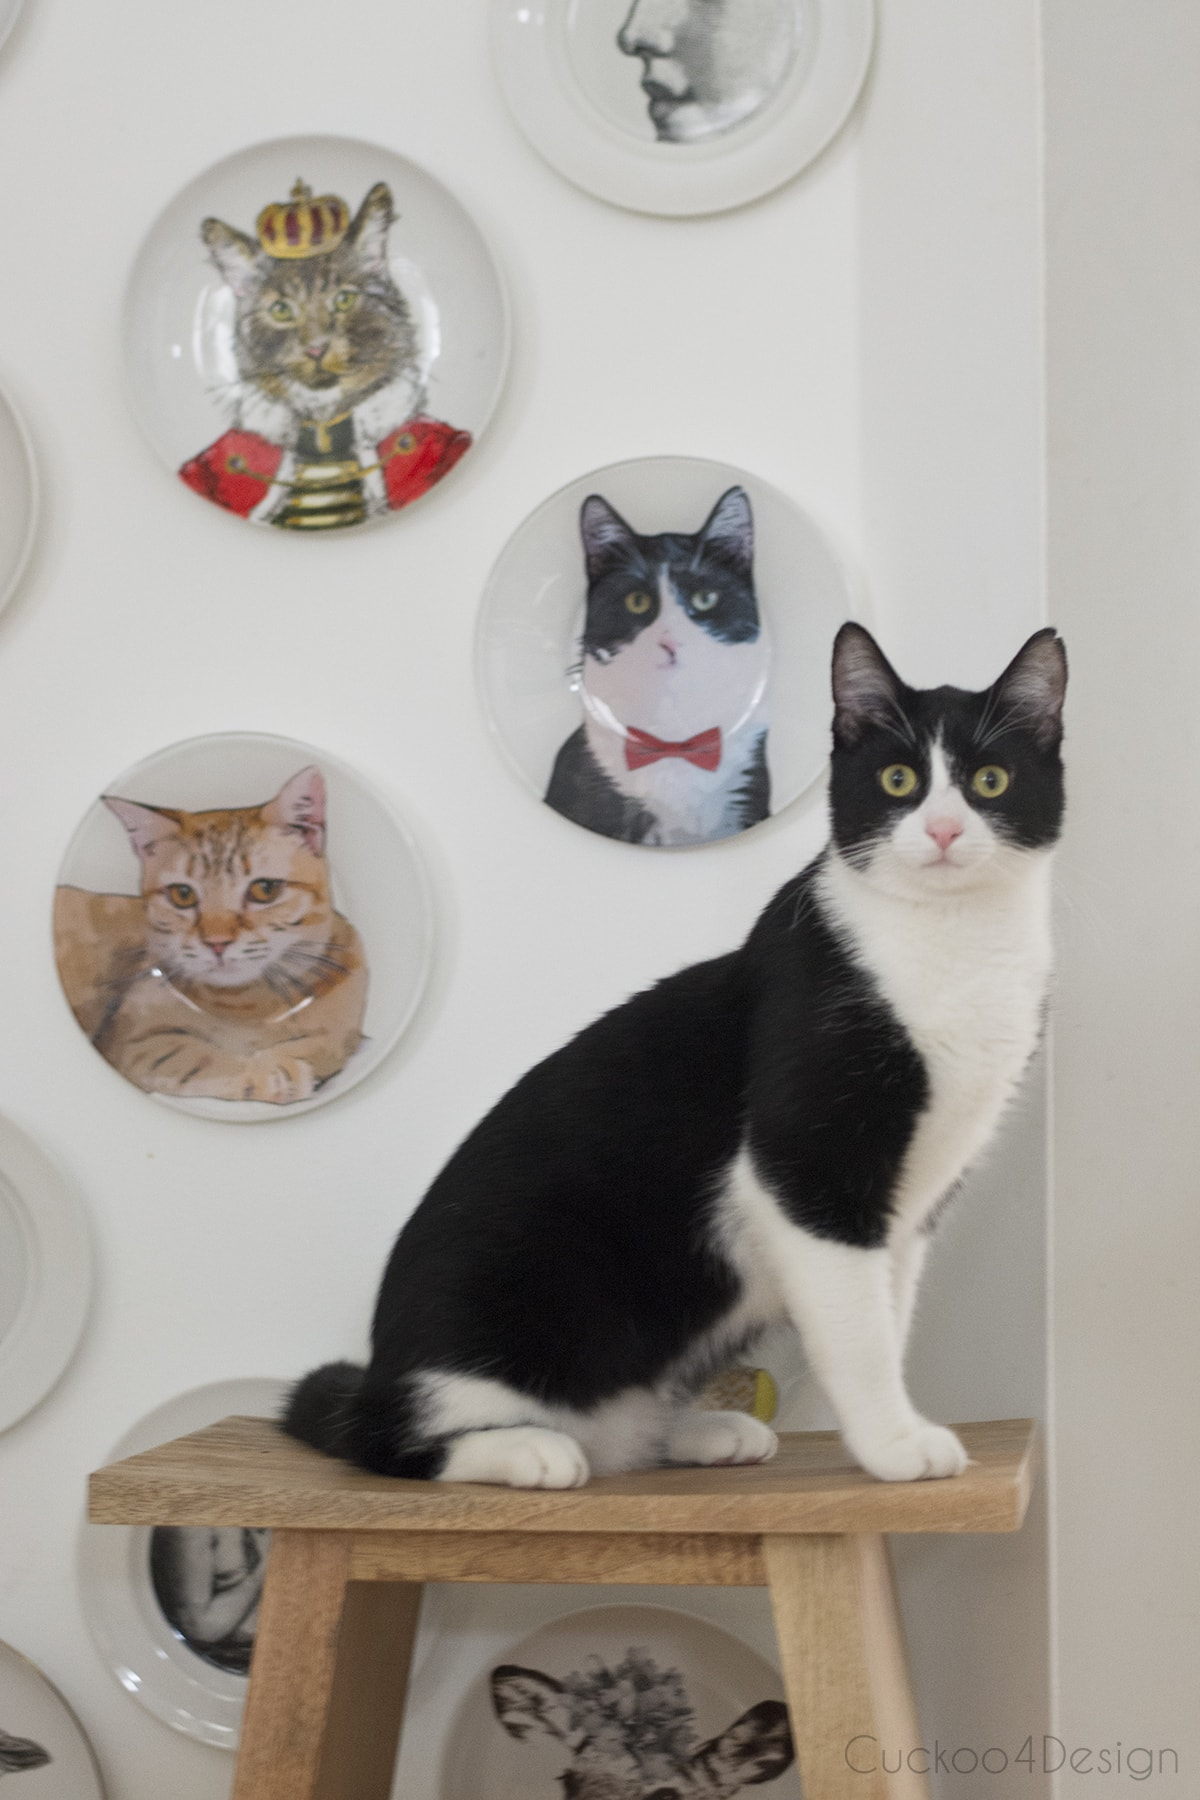 black and white tuxedo cat posing in front of his custom wall plate